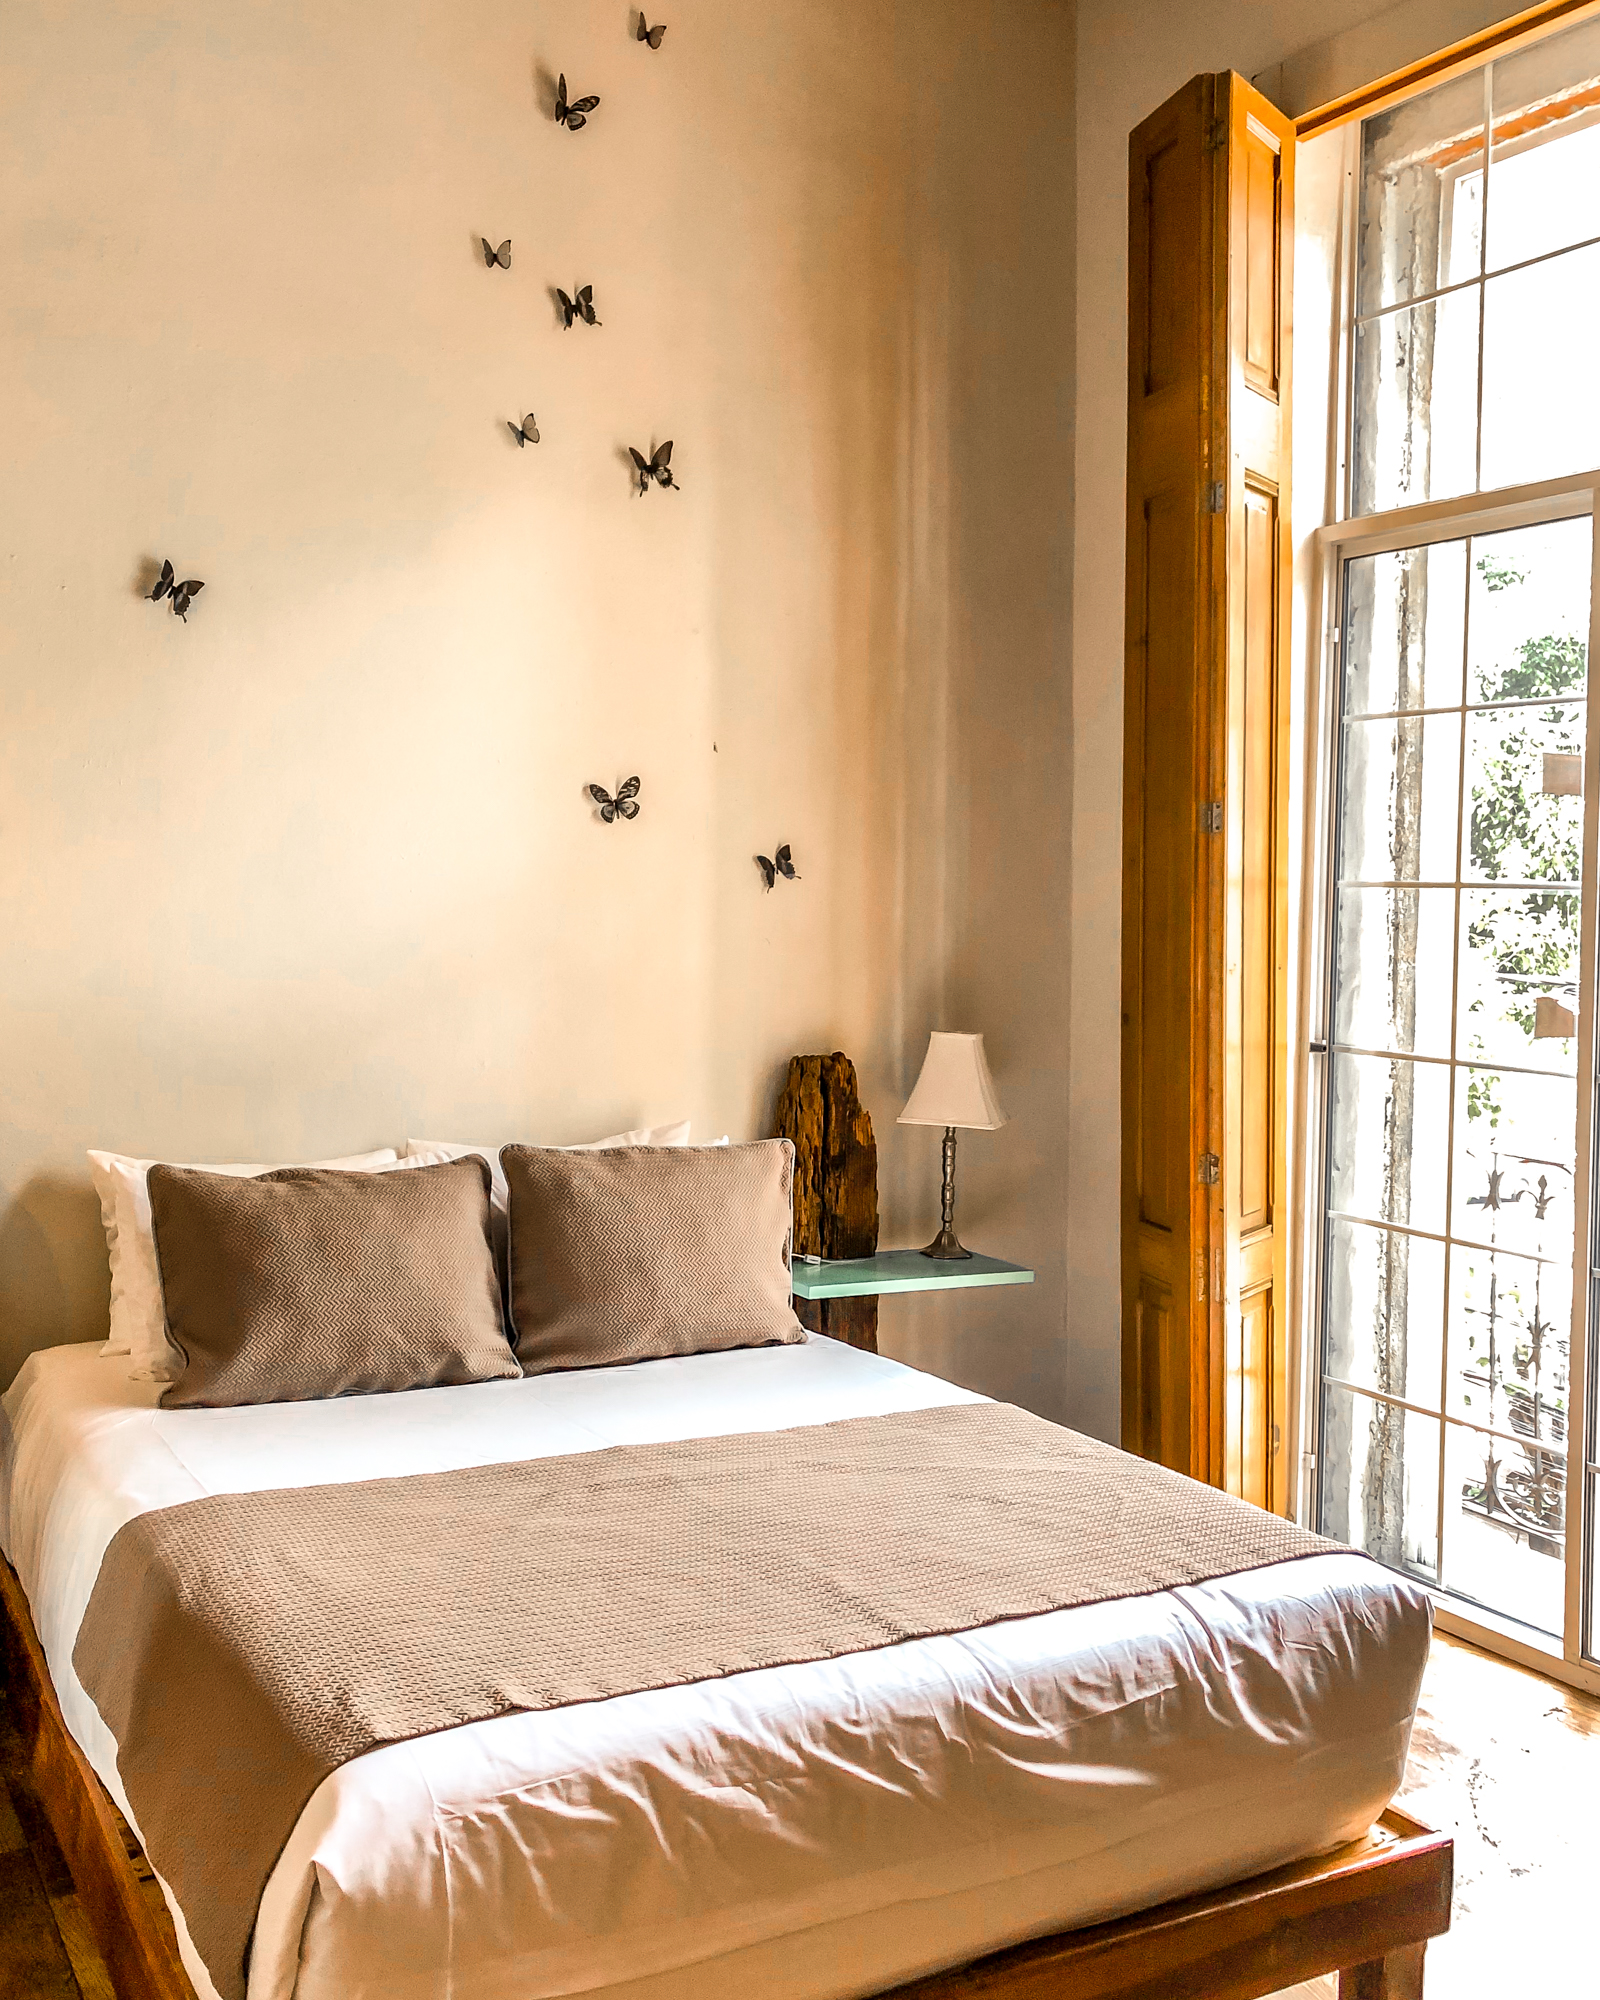 boutique hotel in Mexico City Michoacan room with butterflies